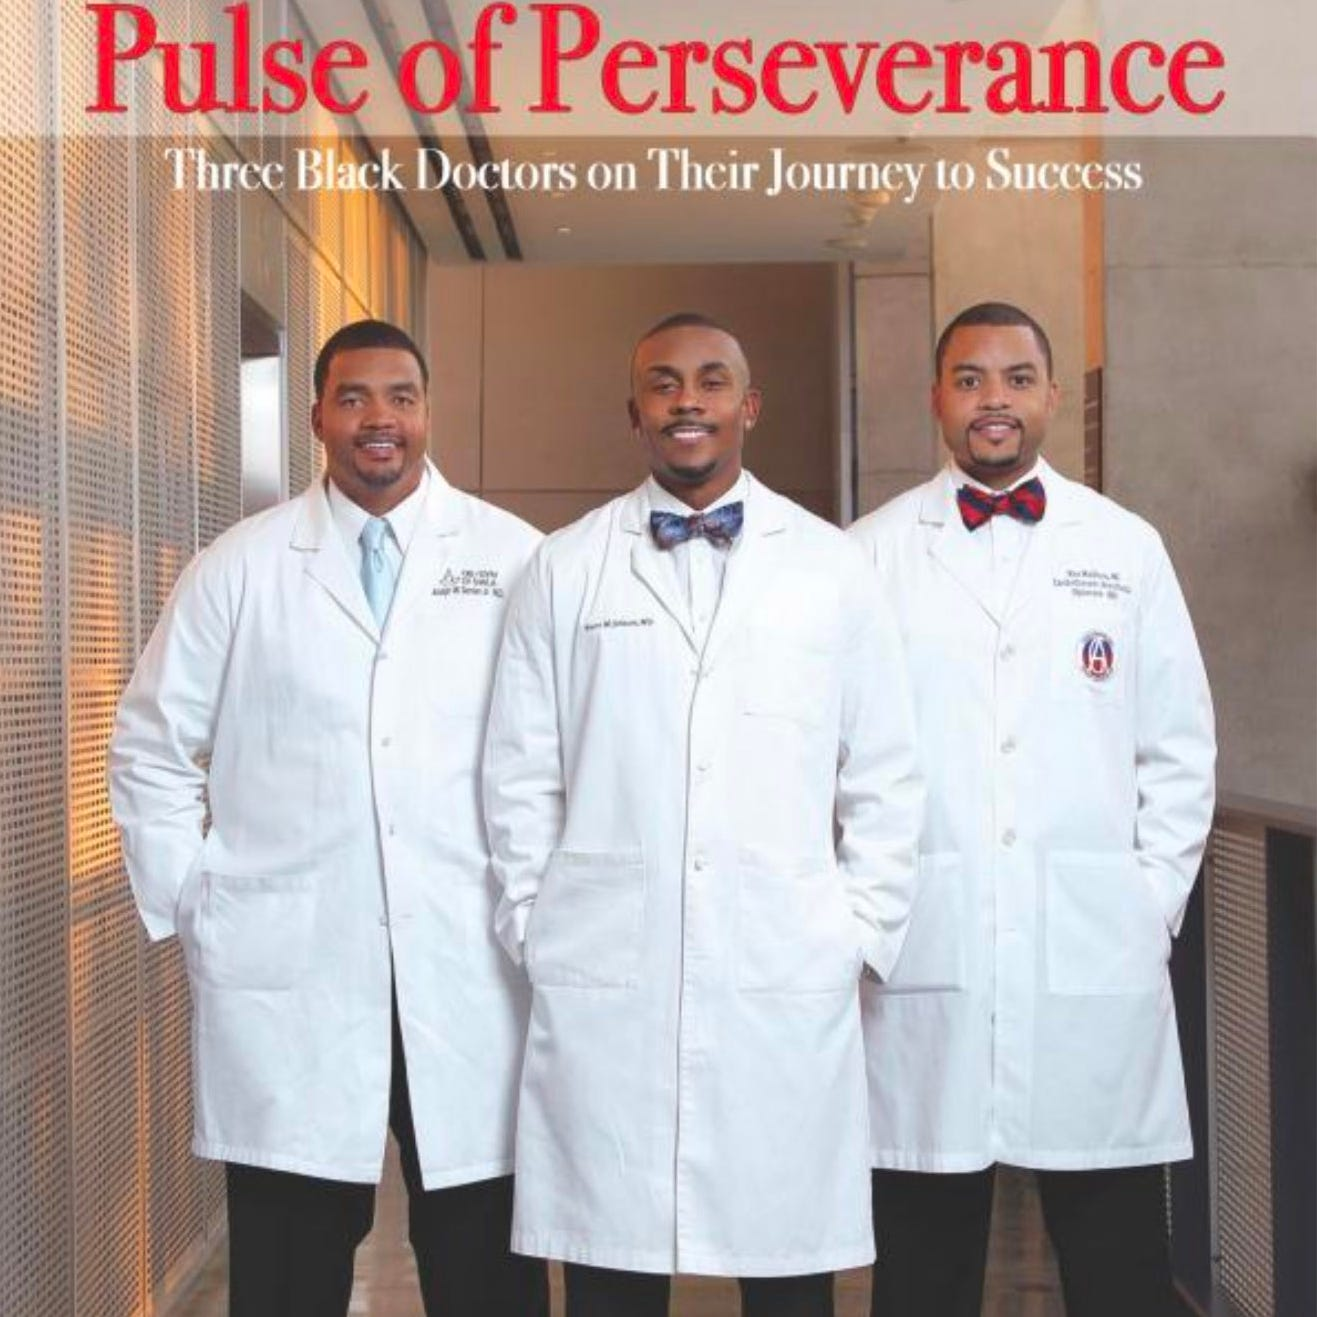 Trio's boyz-to-men journey leads to successful careers as doctors